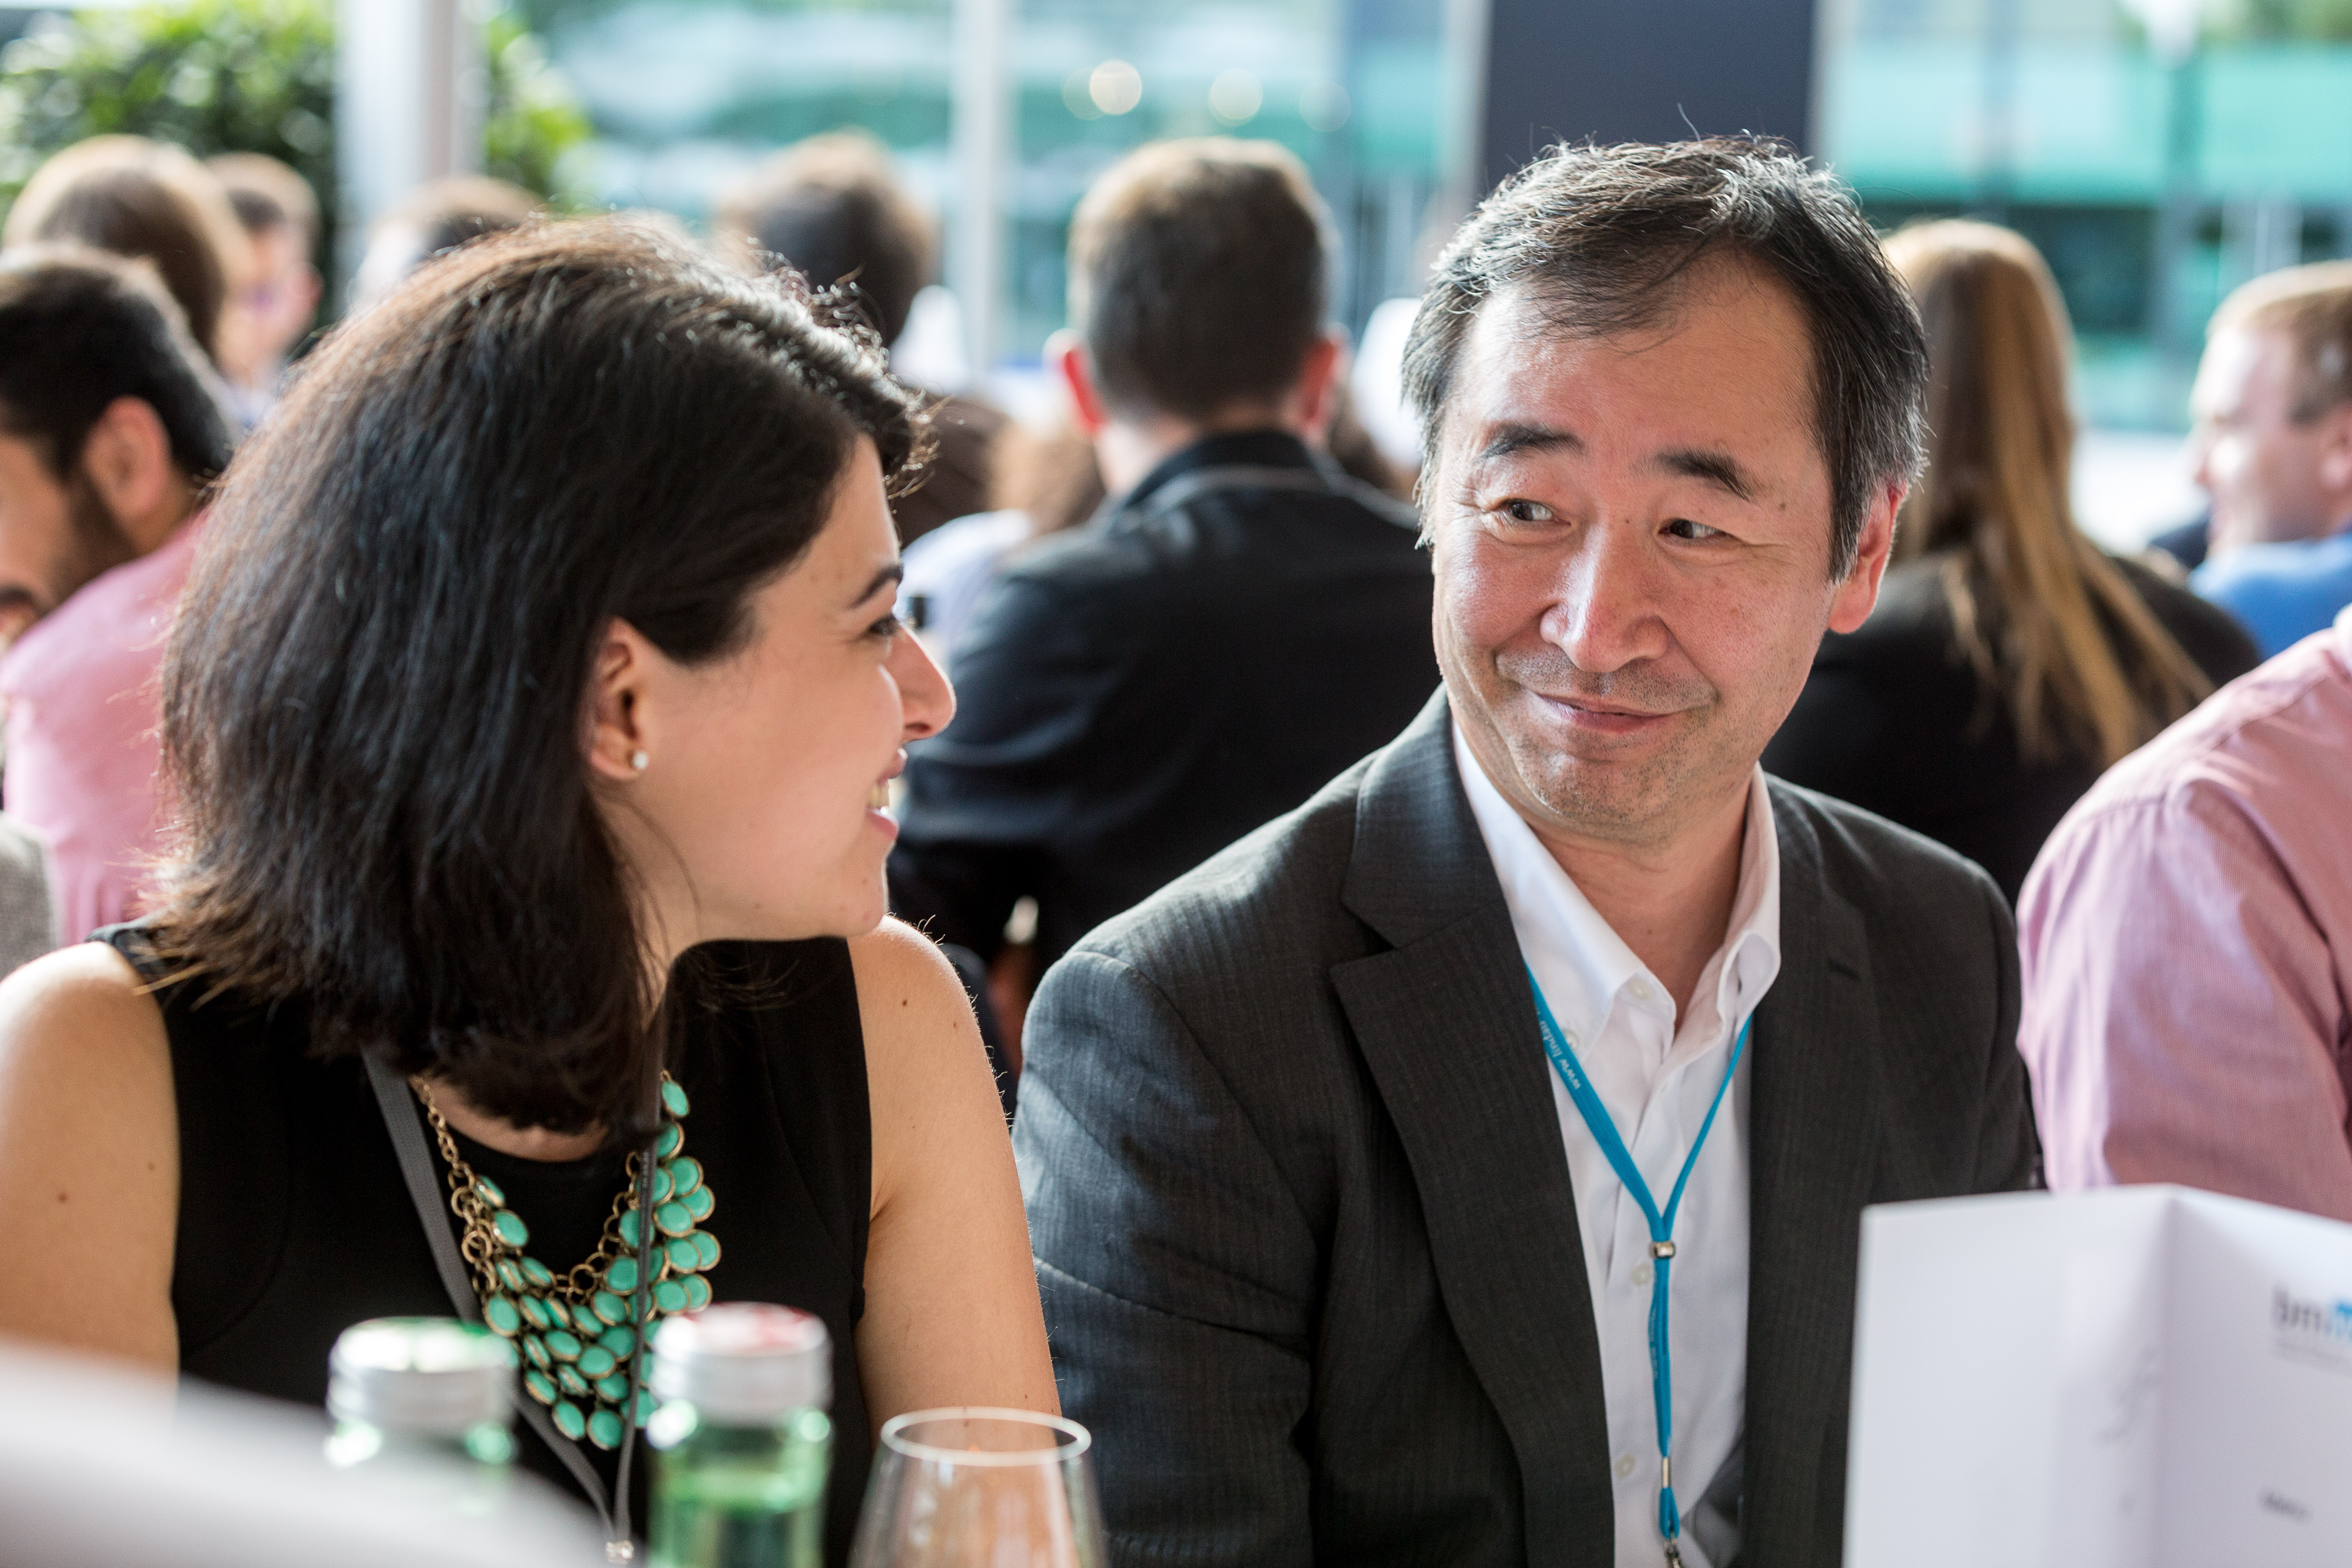 Zara Bagdasarian and Nobel Laureate Takaaki Kajita at the 66th Lindau Nobel Laureate Meeting, 27.06.2016, Lindau, Germany, Picture/Credit: Christian Flemming/Lindau Nobel Laureate Meetings